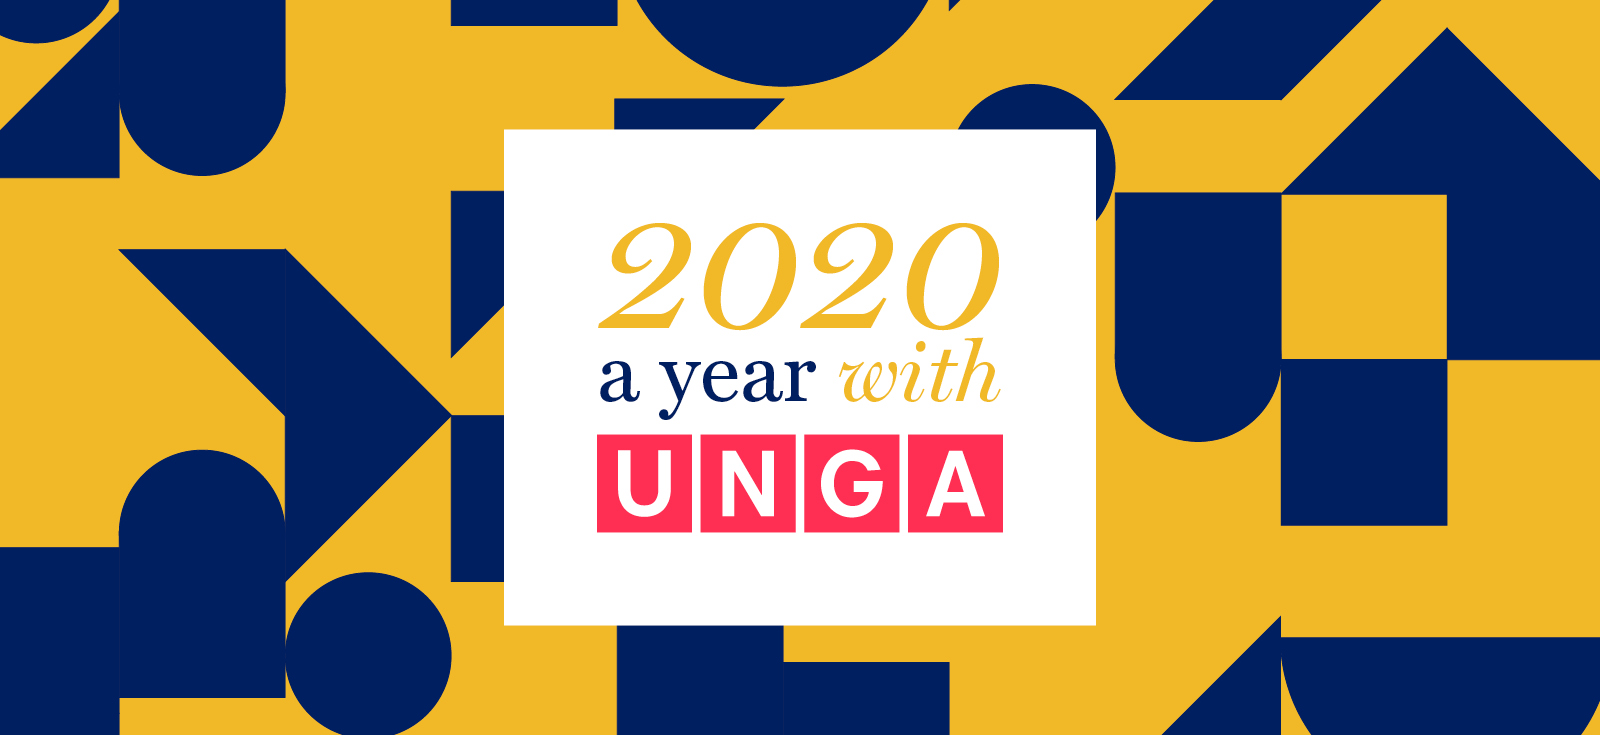 2020-a-year-with-unga-report-header